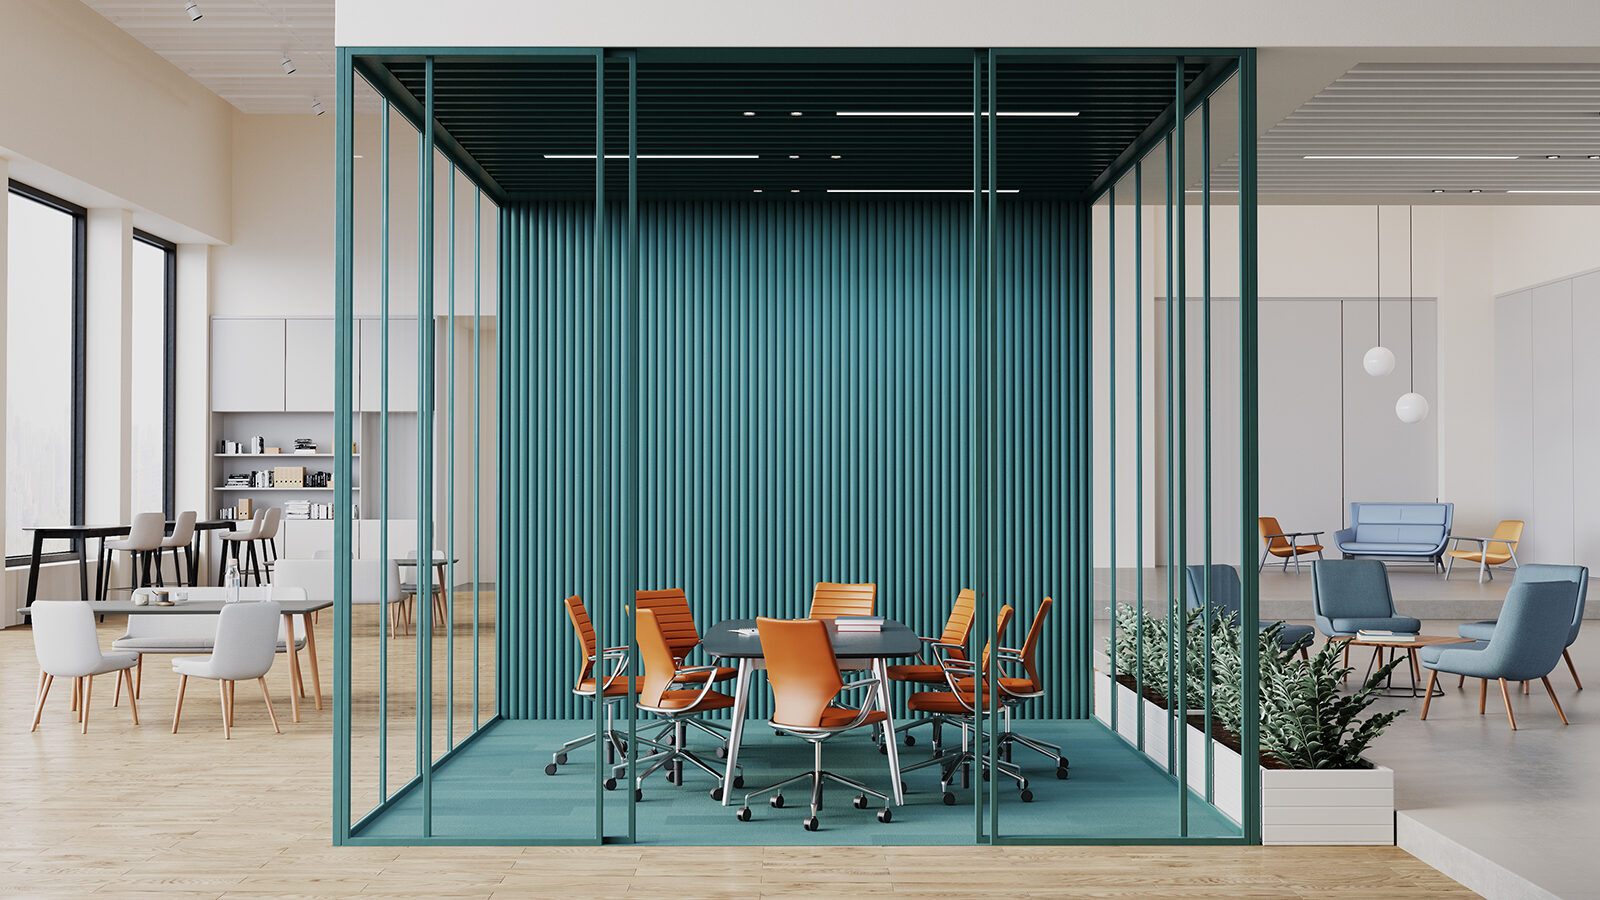 Orange Swurve chairs around a black conference table in a glazed teal conference room